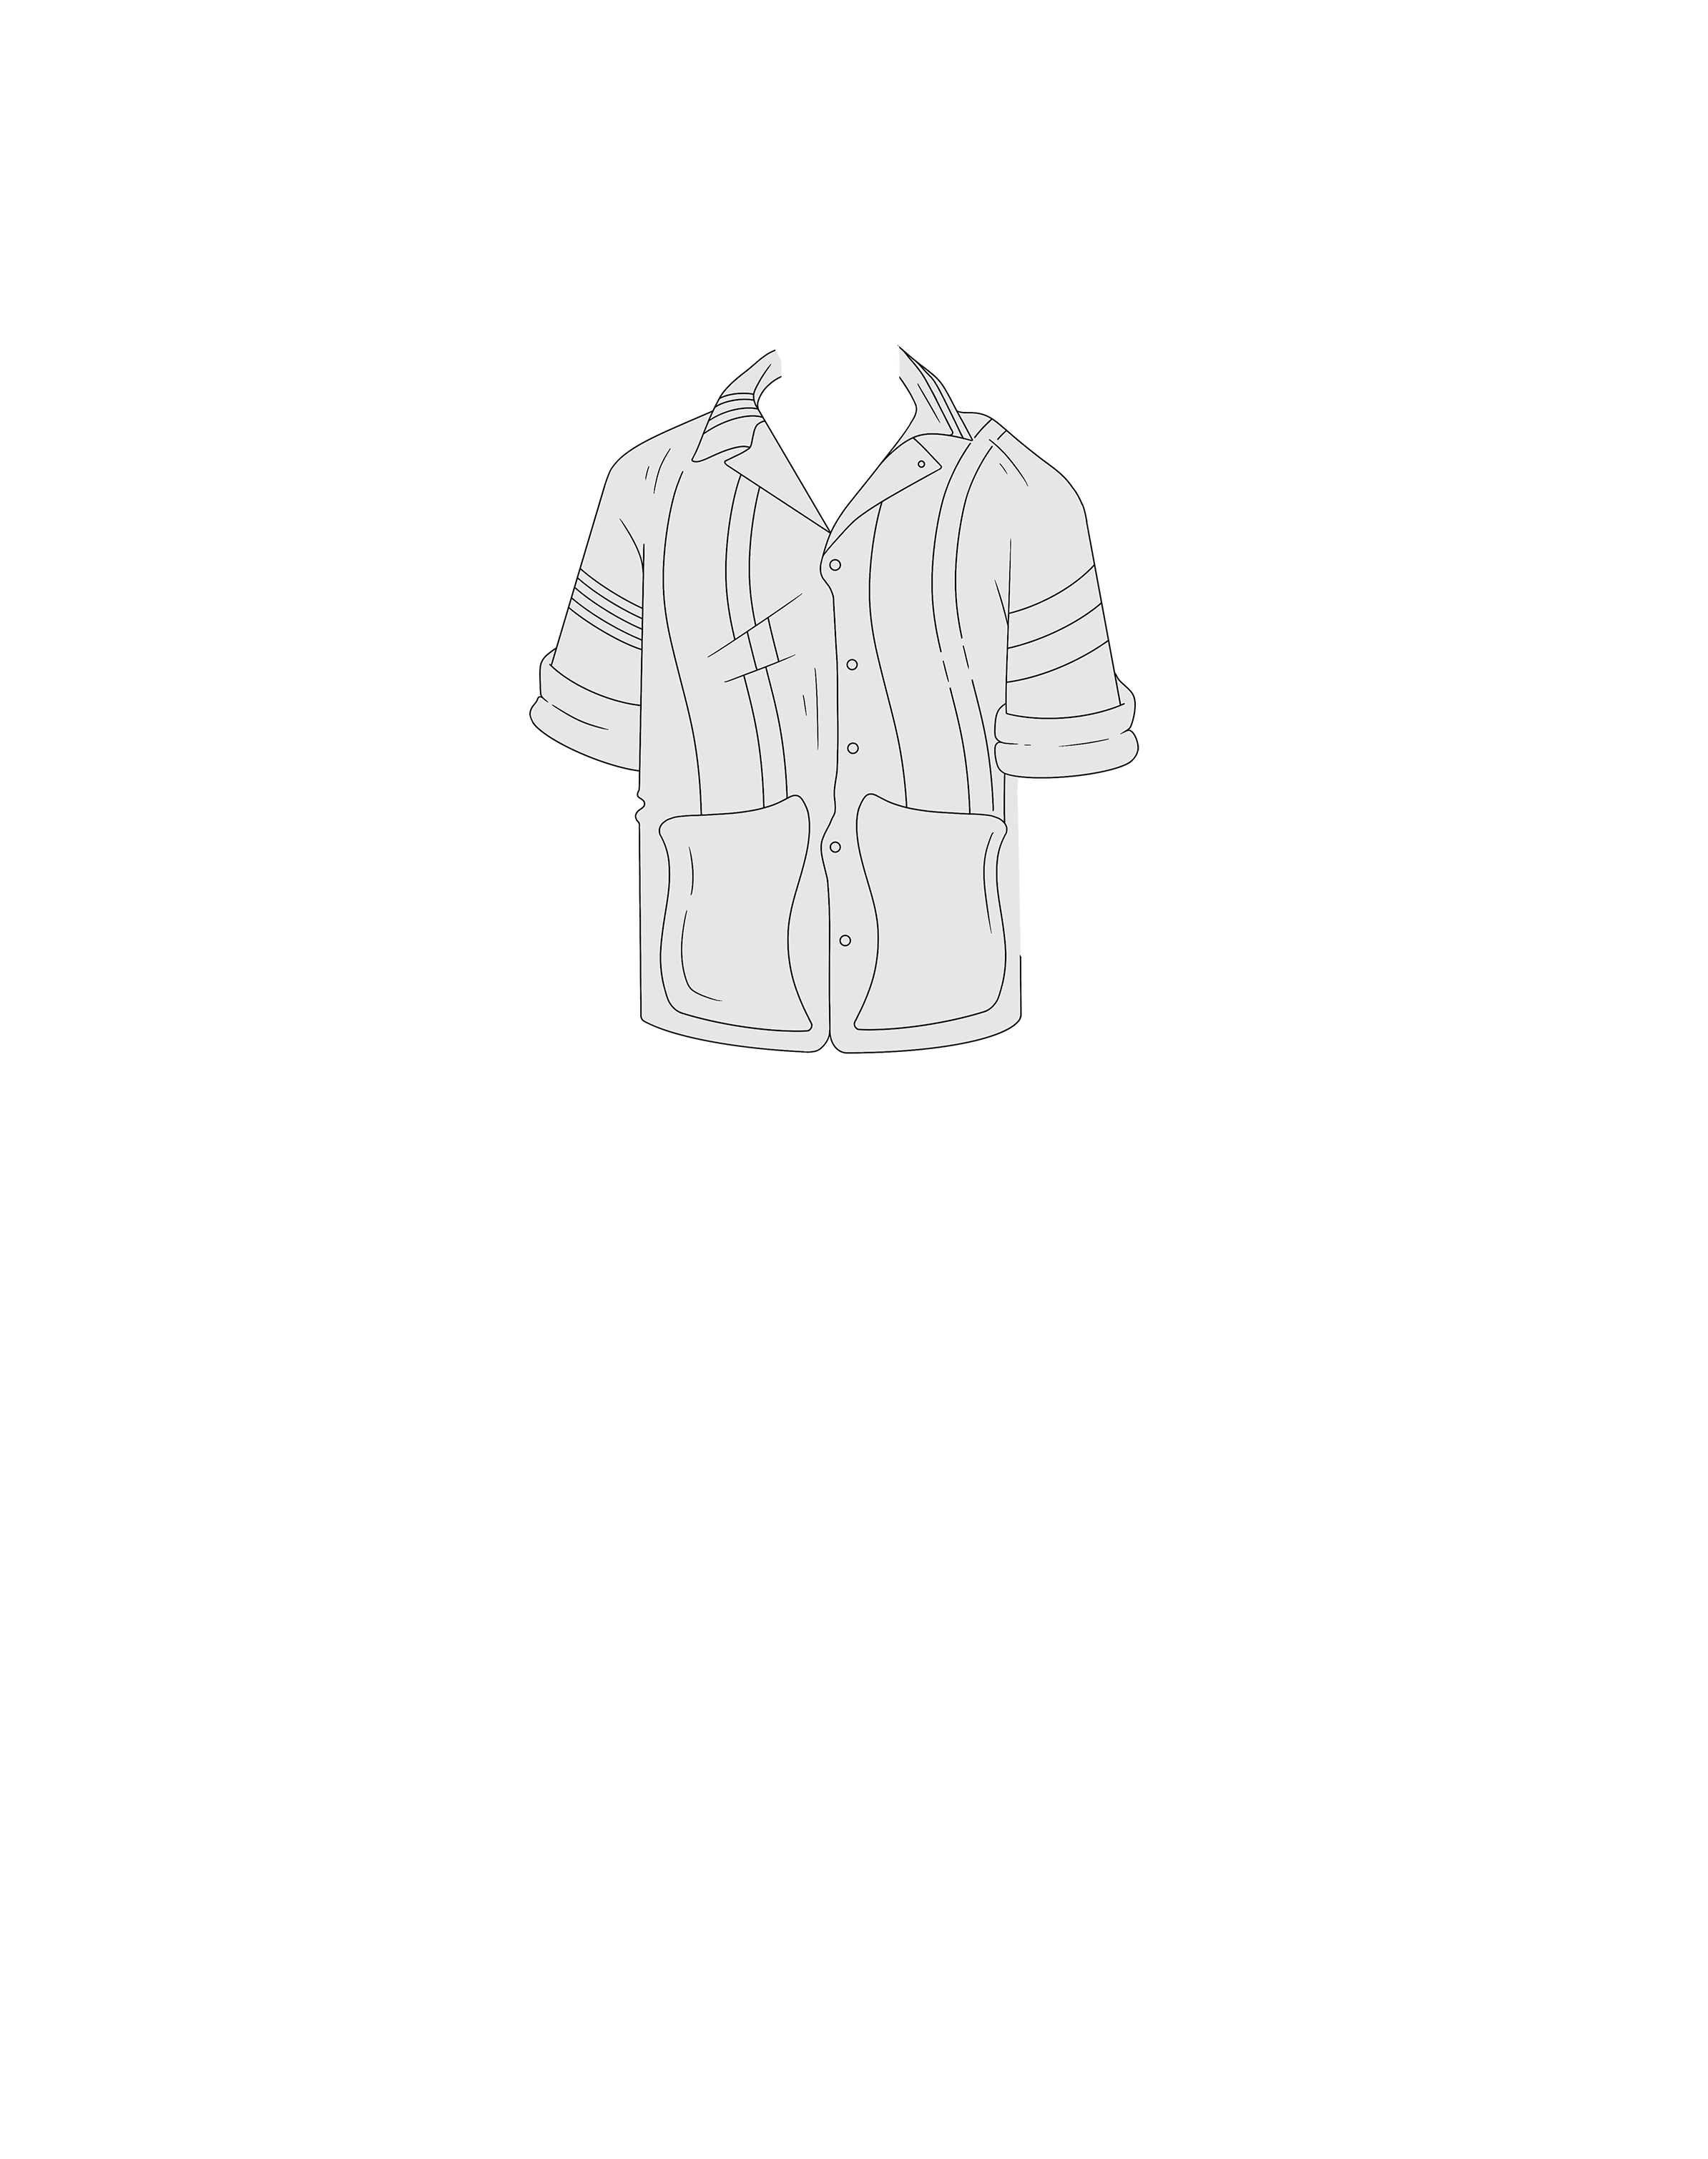 Collared shirt illustration